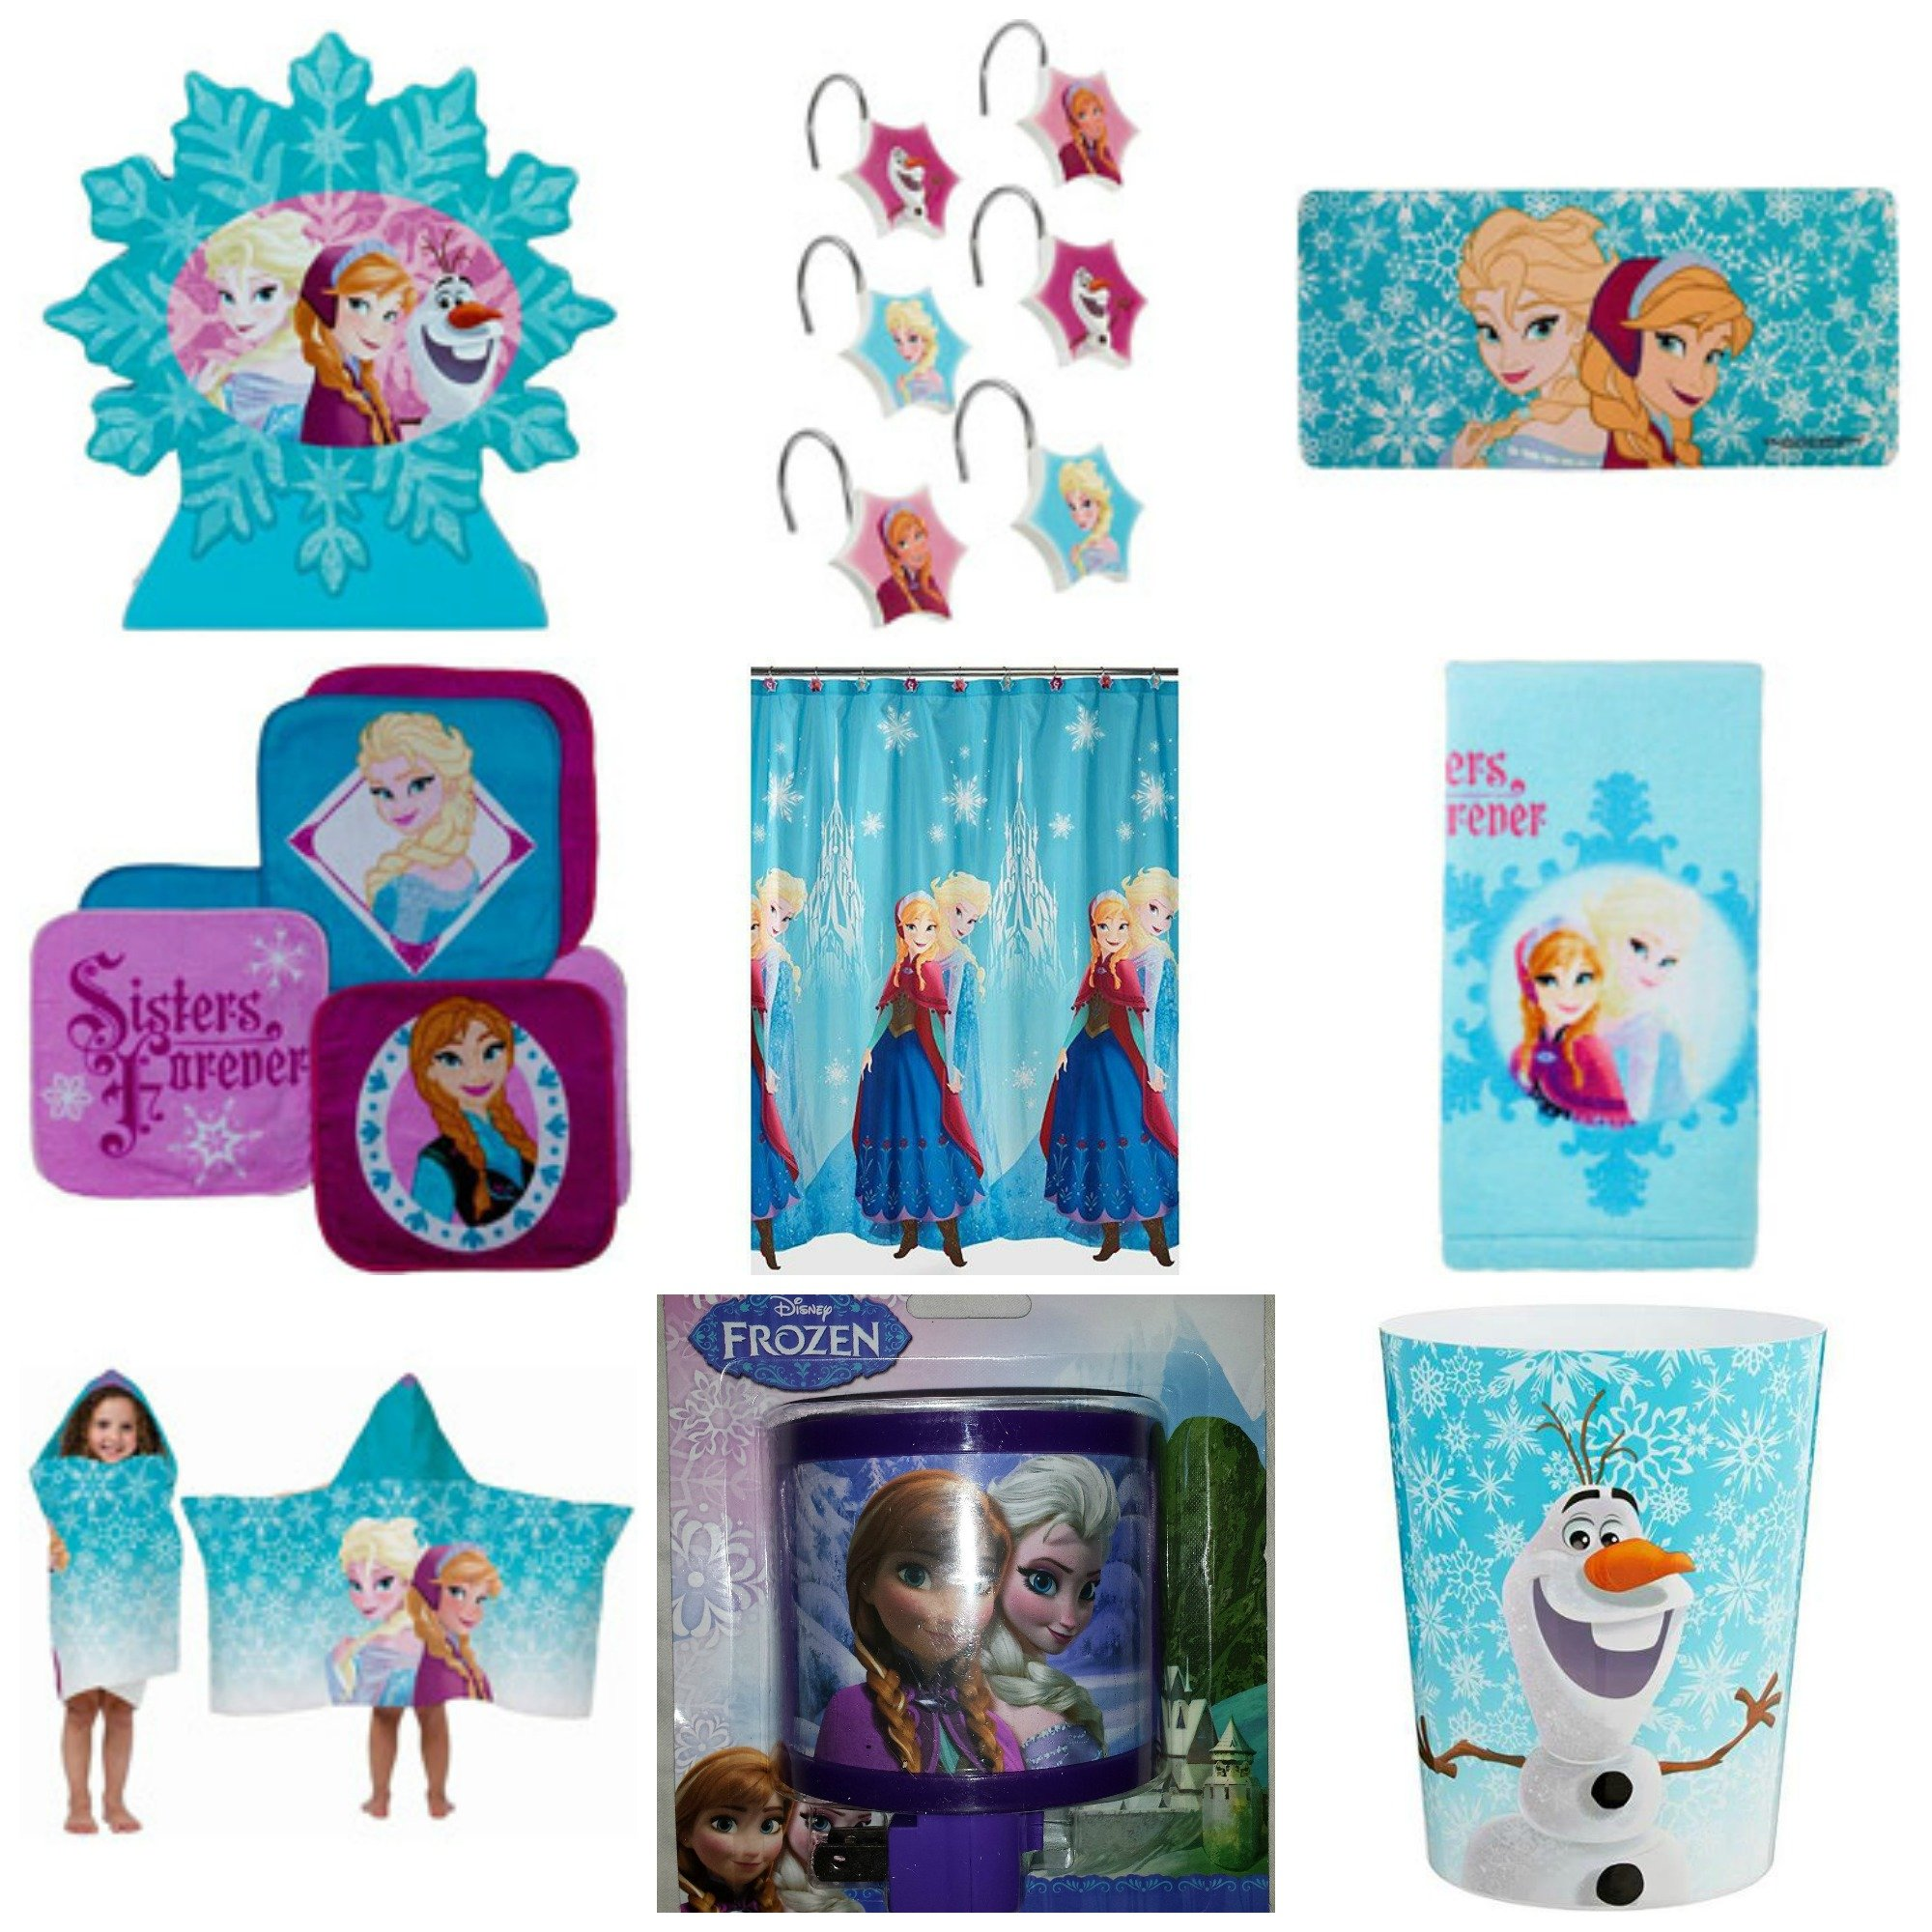 Disney Frozen Ultimate 9 Piece Bathroom Accessories Set by Disney